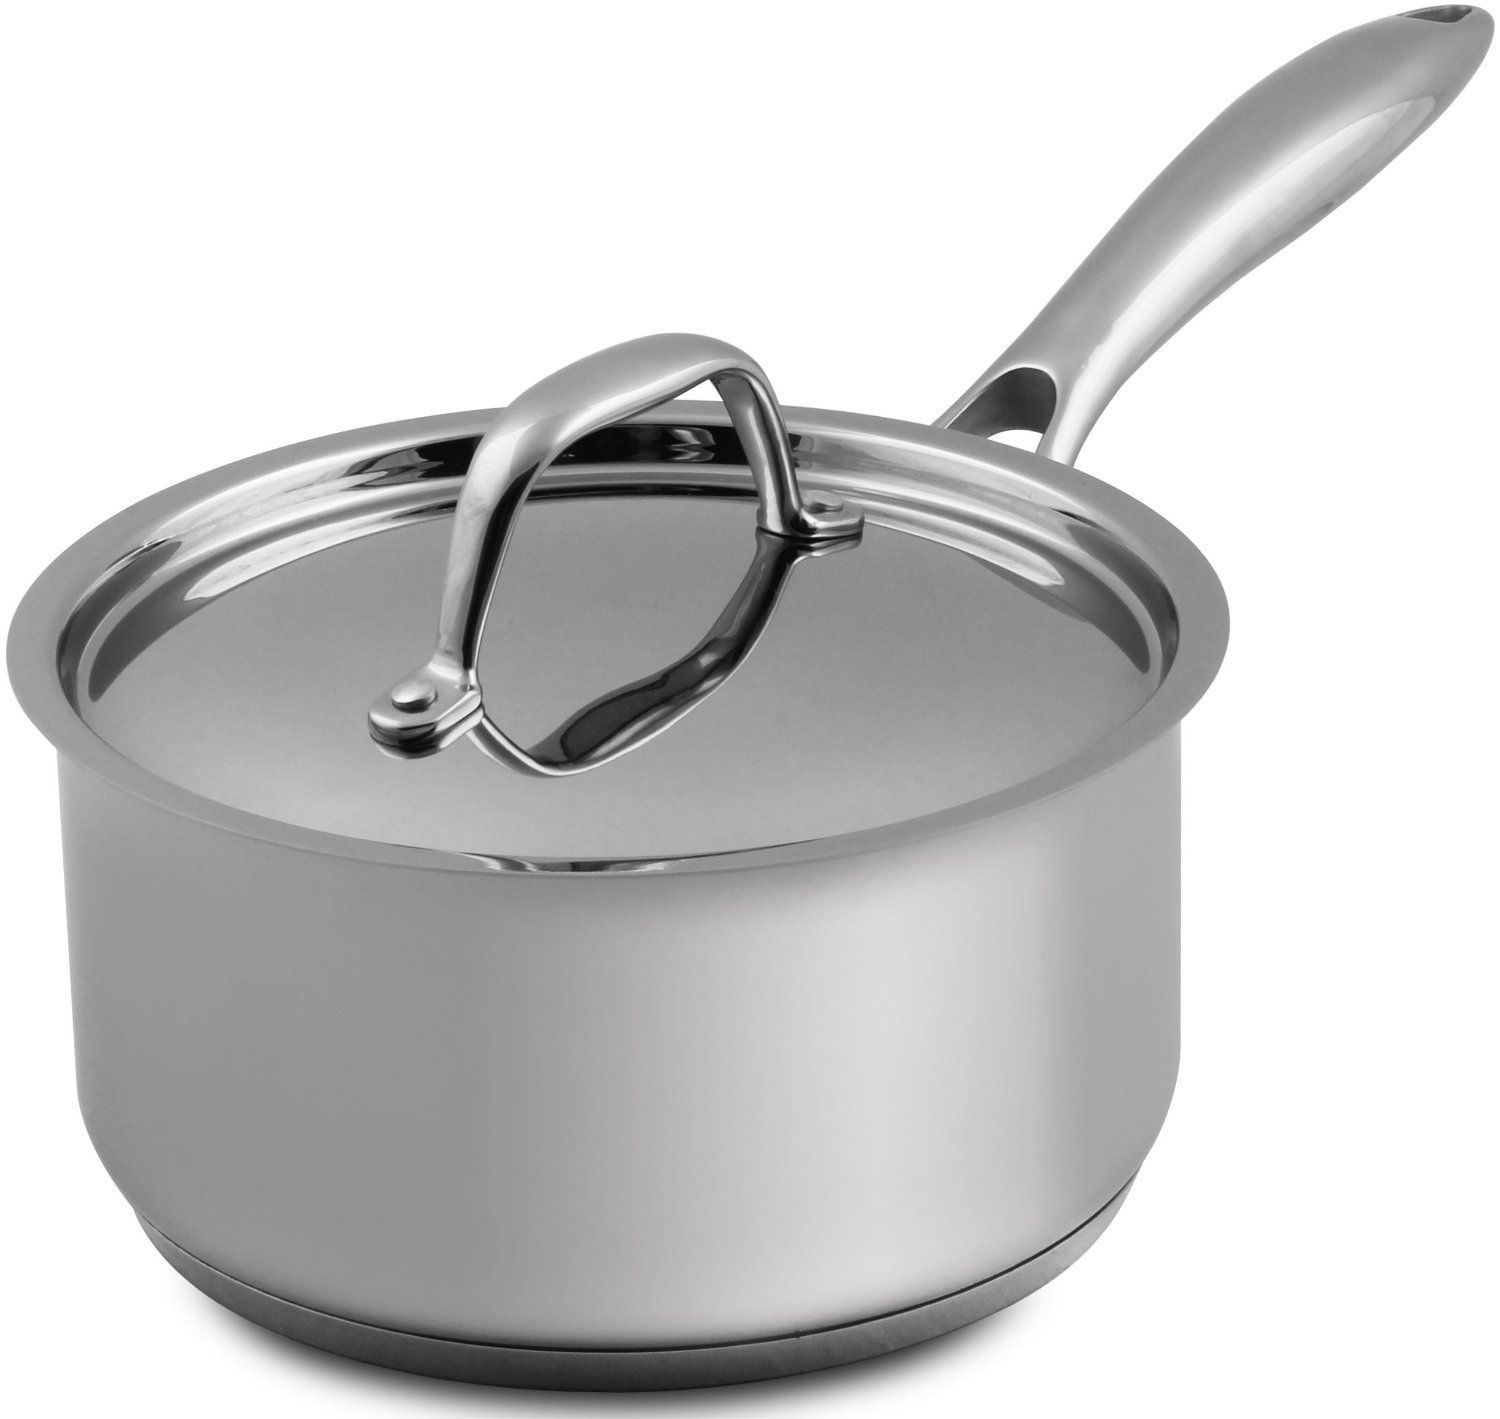 by Utopia Kitchen by Utopia Kitchen Saucepan with Cover 18//10 Stainless Steel 2 Quart Chefs Choice Multipurpose Use for Home Kitchen or Restaurant 18 x 9cm